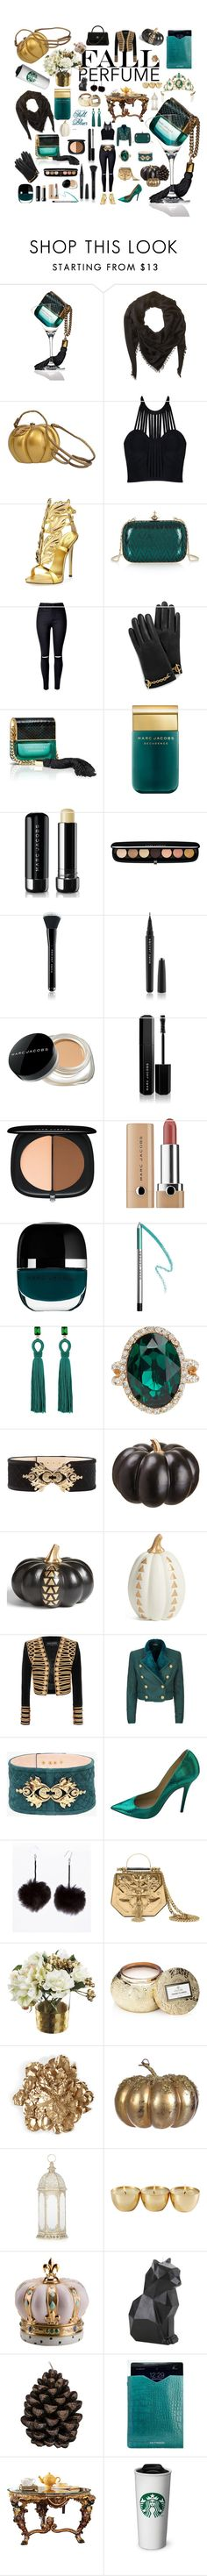 """Princess Jasmine Fall style"" by vanessa-chavez-ii ❤ liked on Polyvore featuring beauty, Marc Jacobs, Timmy Woods, Giuseppe Zanotti, Vivienne Westwood, Mulberry, Oscar de la Renta, ALDO, Balmain and Allstate Floral"